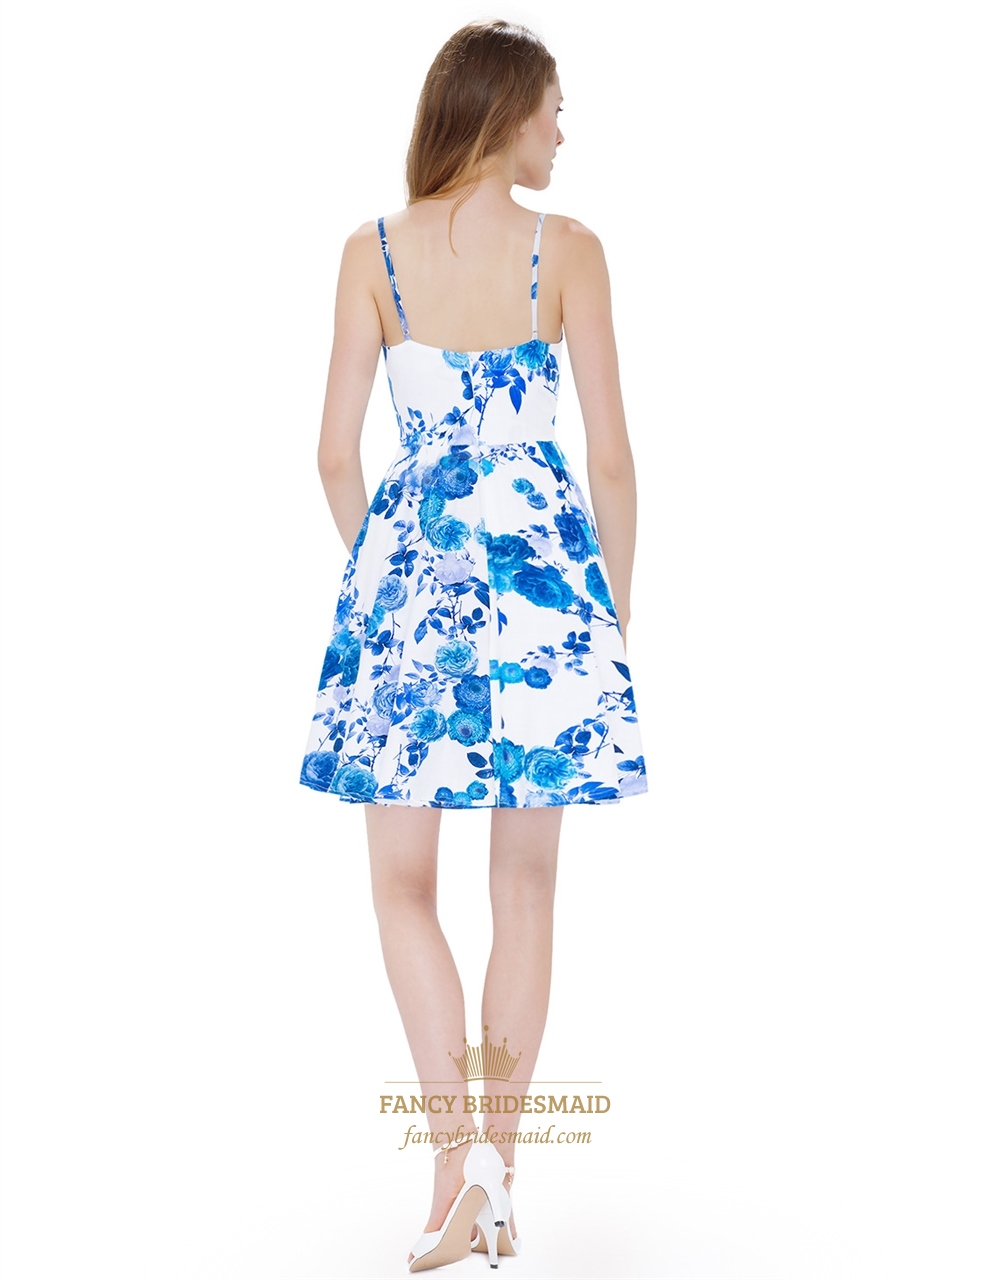 White Spaghetti Strap Sleeveless A Line Causal Dress With Blue Flower